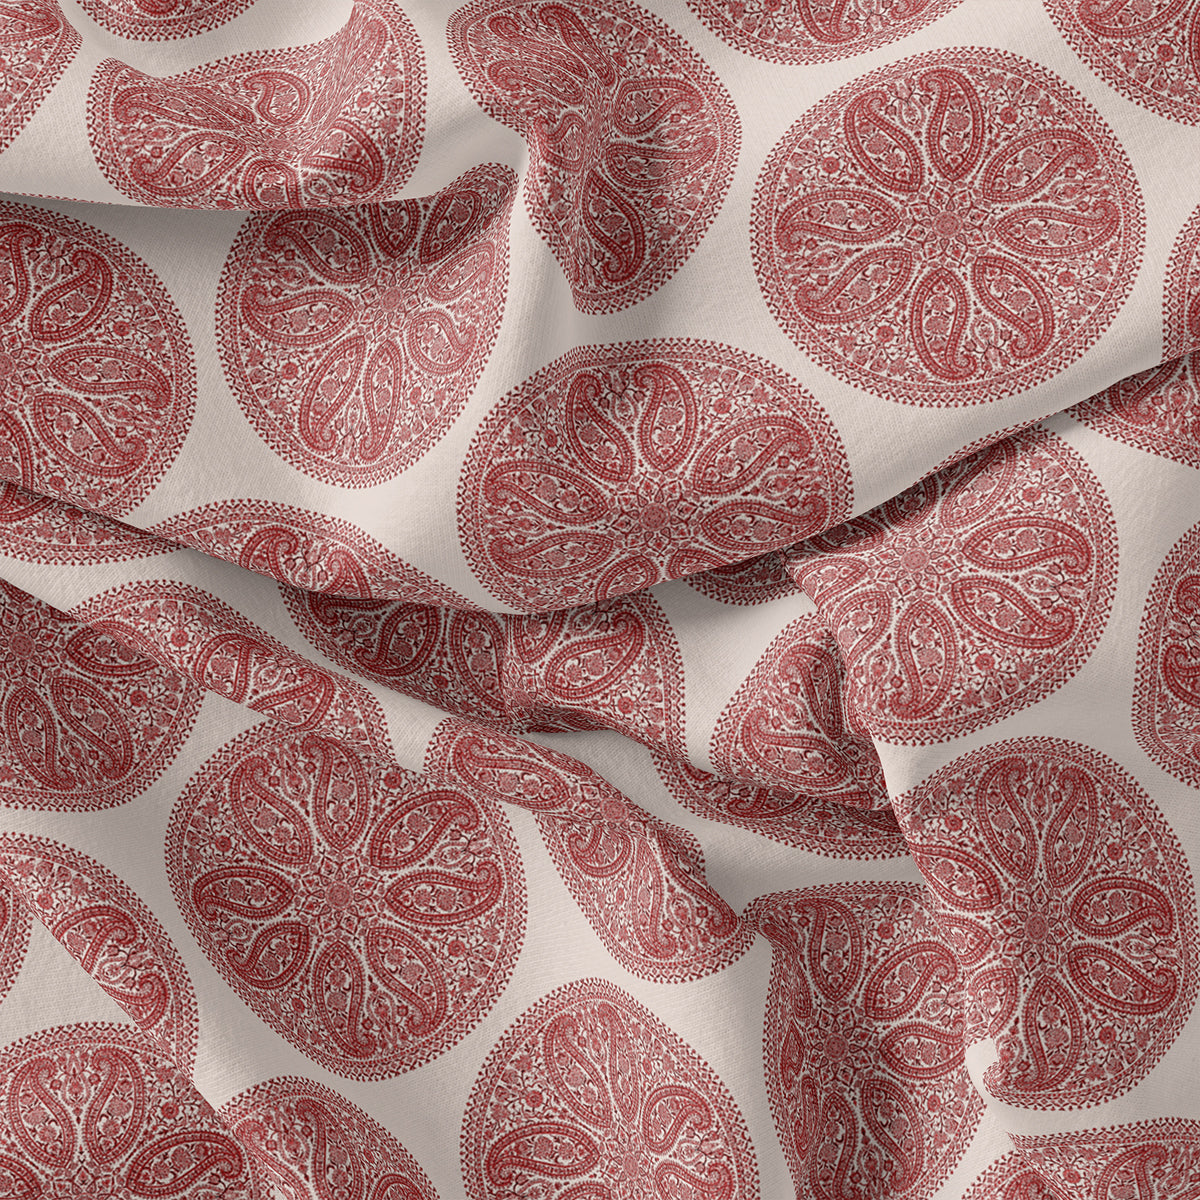 Oriental Paisley Patterns Digital Printed Fabric